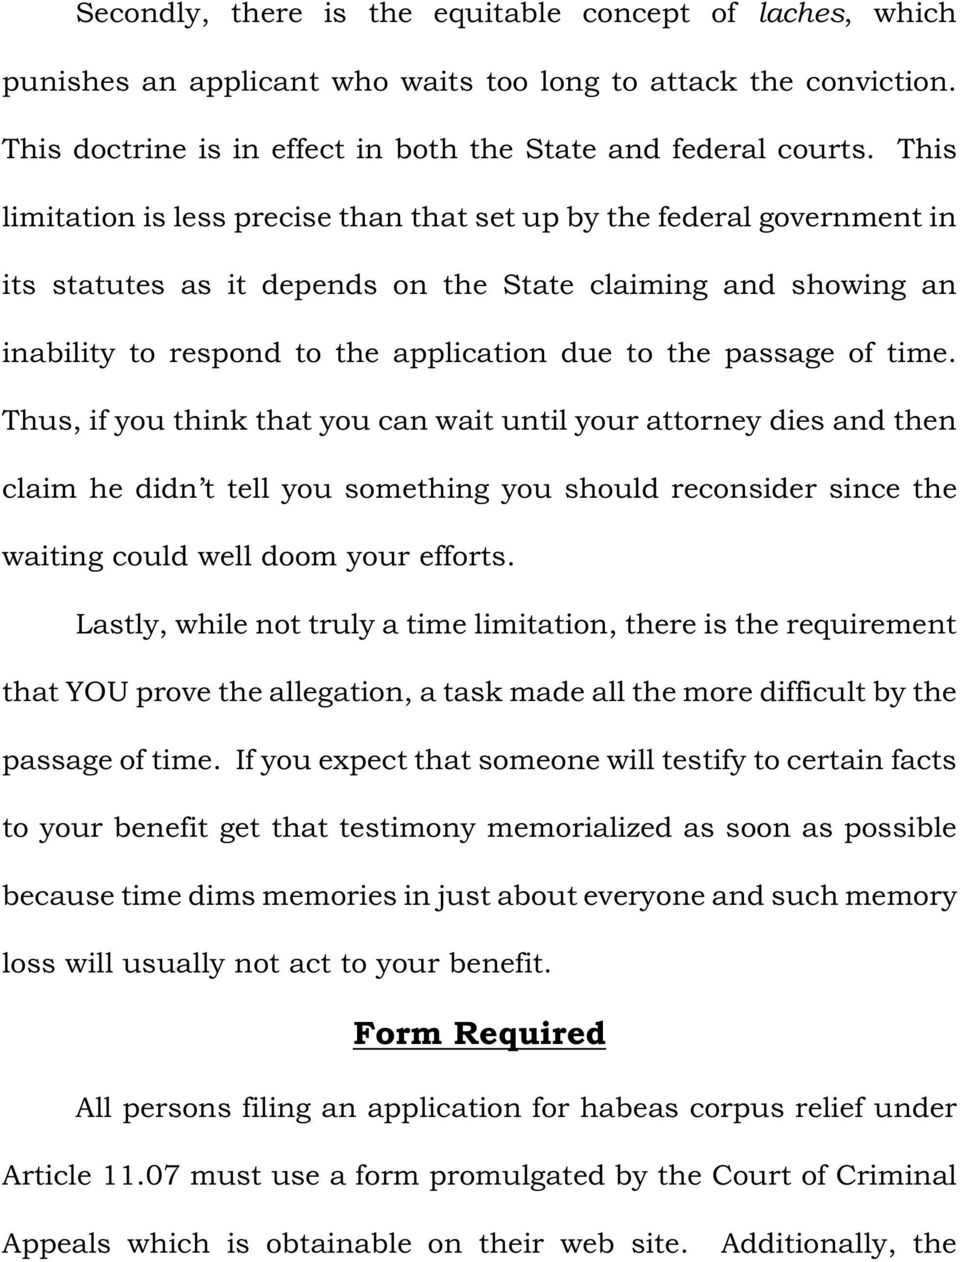 passage of time. Thus, if you think that you can wait until your attorney dies and then claim he didn t tell you something you should reconsider since the waiting could well doom your efforts.